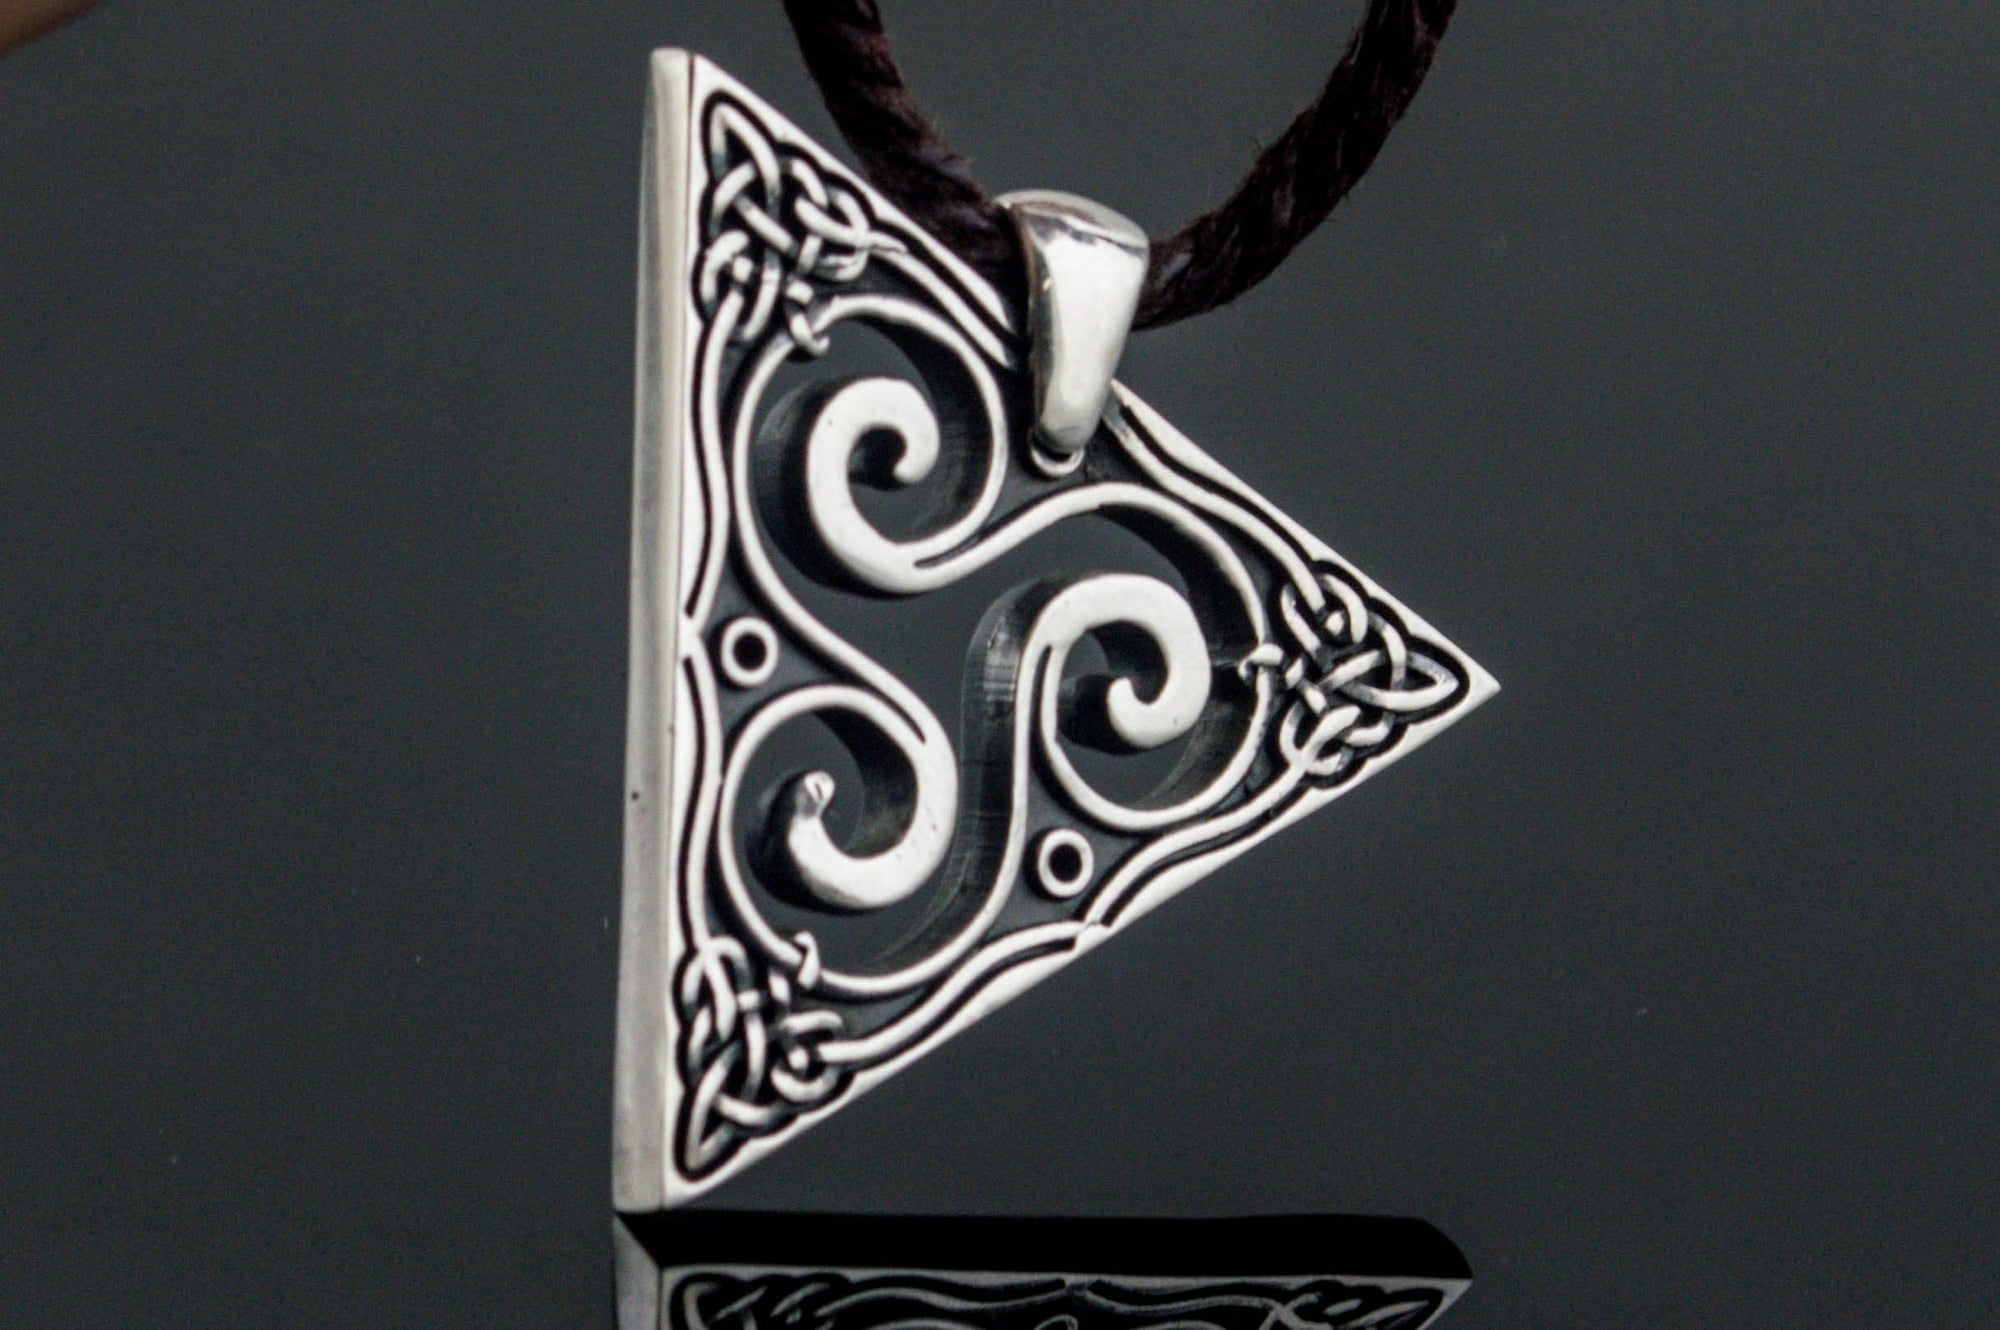 Celtic Sterling Silver Pendant with Triskele Symbol Ancient Treasures Ancientreasures Viking Odin Thor Mjolnir Celtic Ancient Egypt Norse Norse Mythology